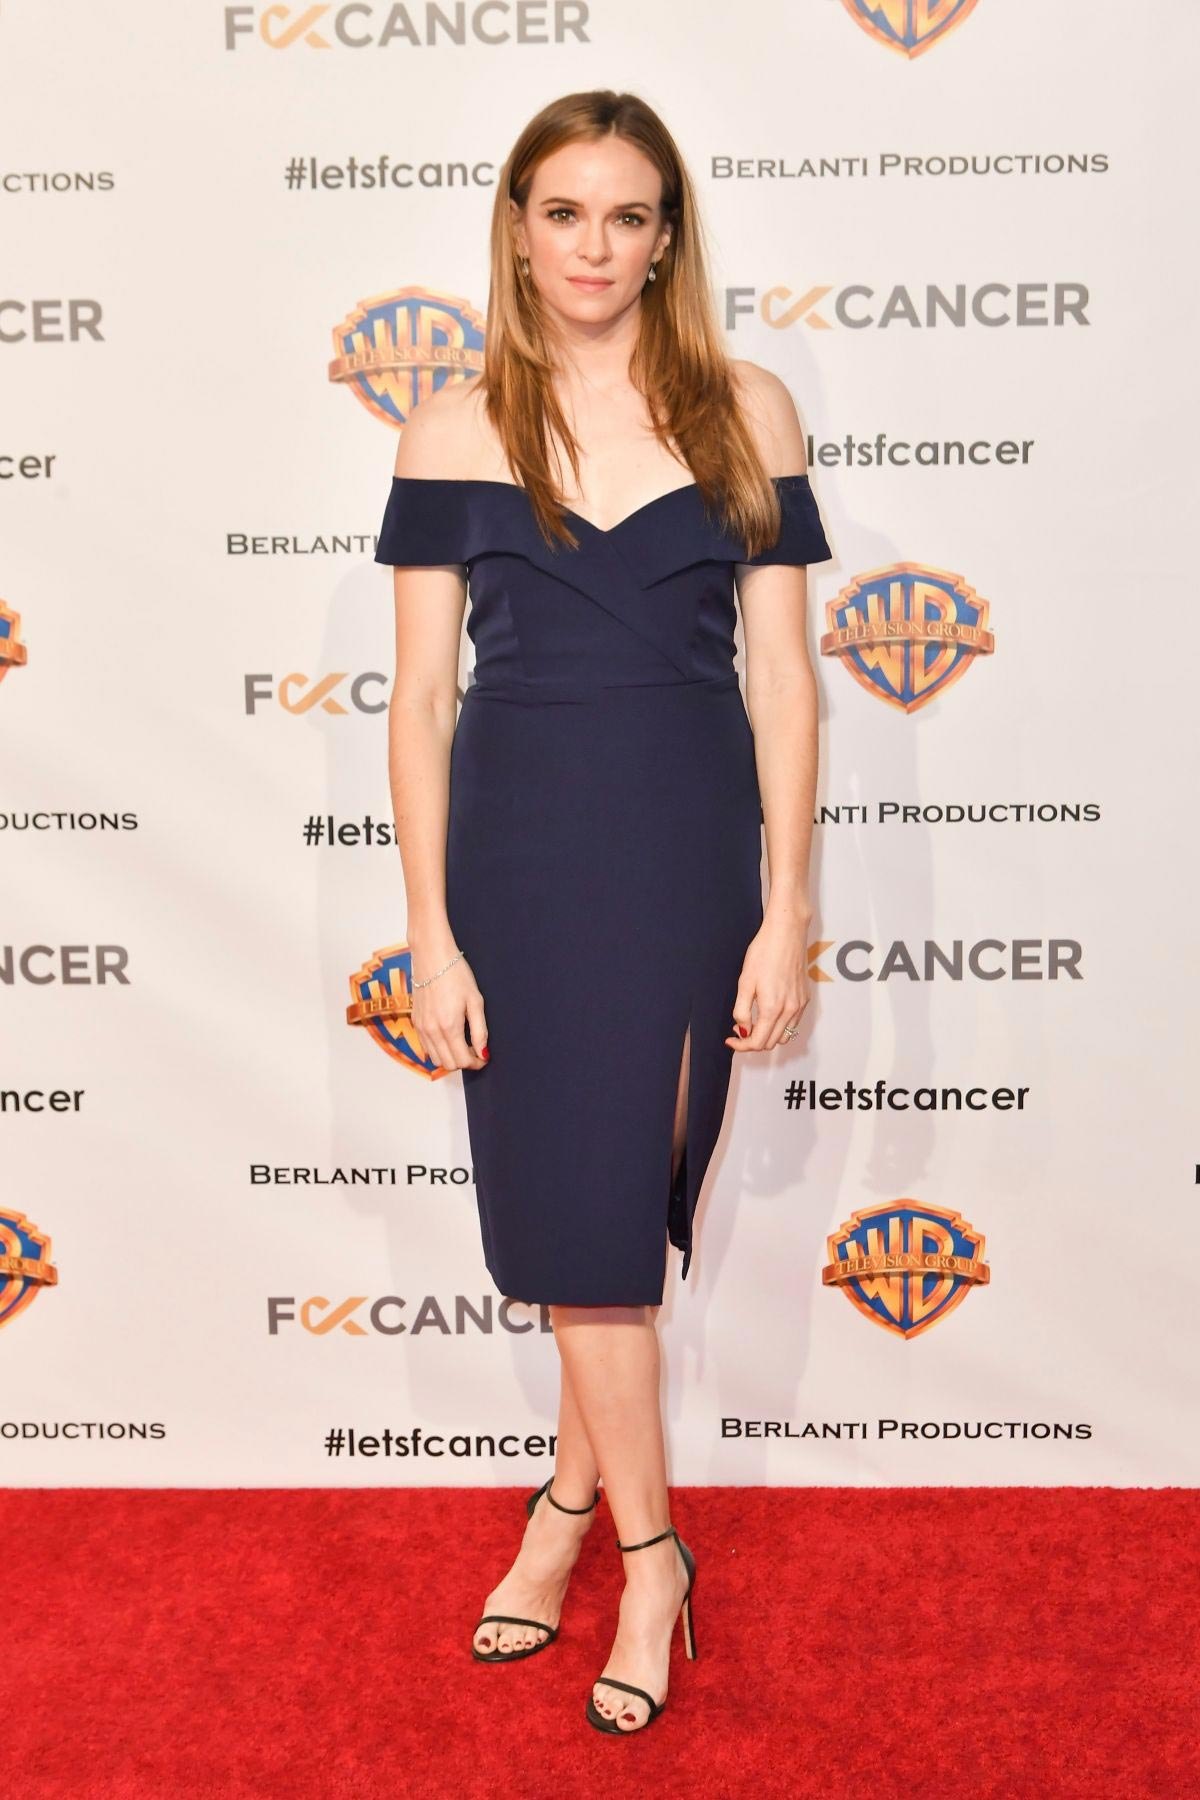 Danielle Panabaker at Barbara Berlanti Fk Cancer Benefit in Los Angeles 2018/10/13 1